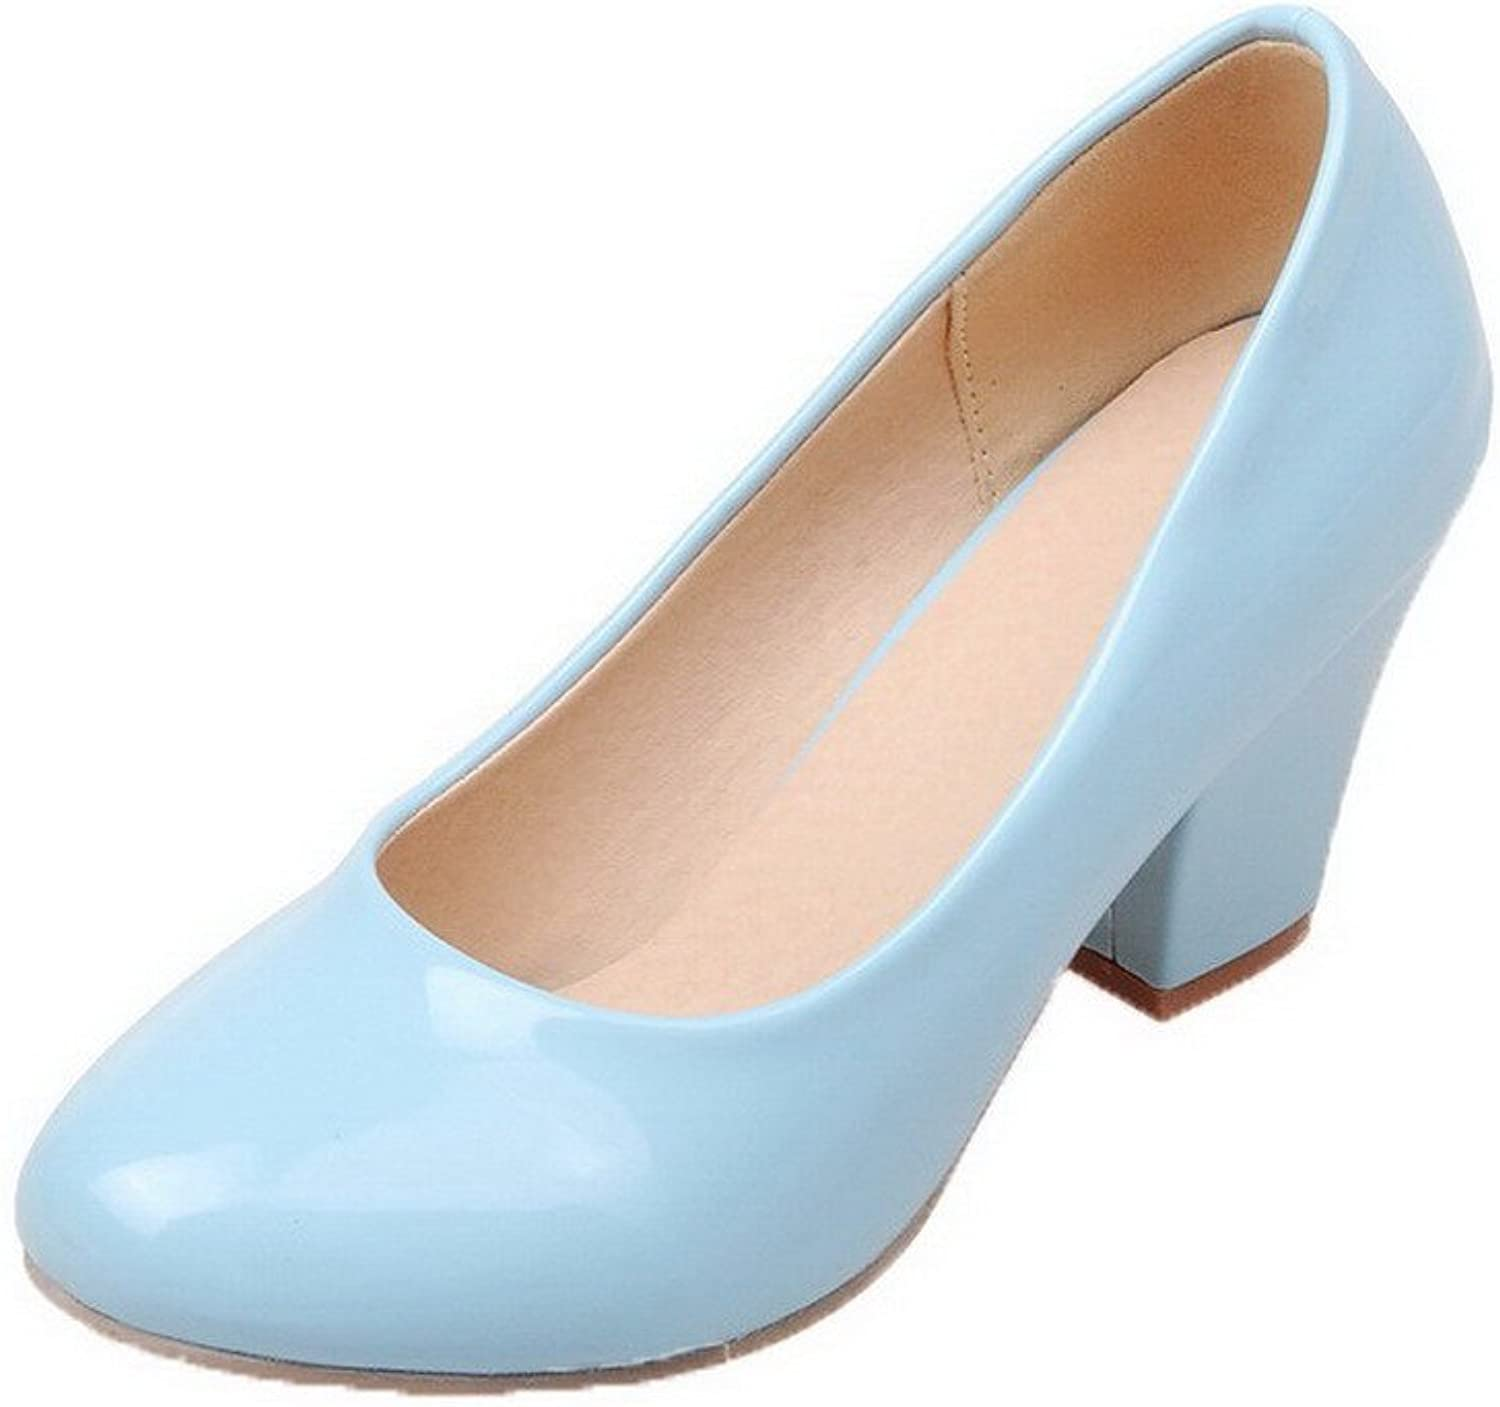 WeenFashion Women's Patent Leather Pull-On Round-Toe Kitten-Heels Pumps-shoes